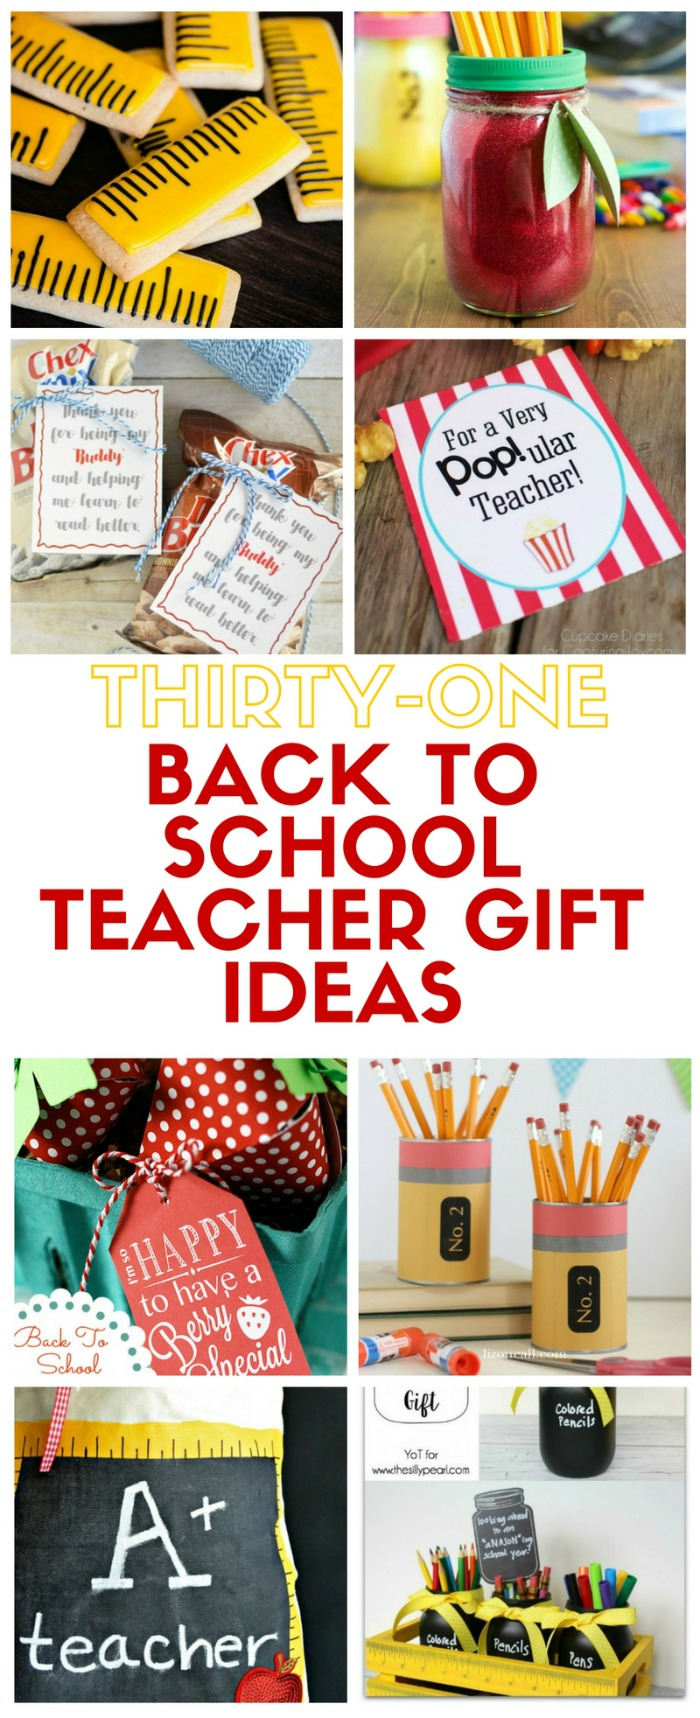 31 Back To School Teacher Gift Ideas